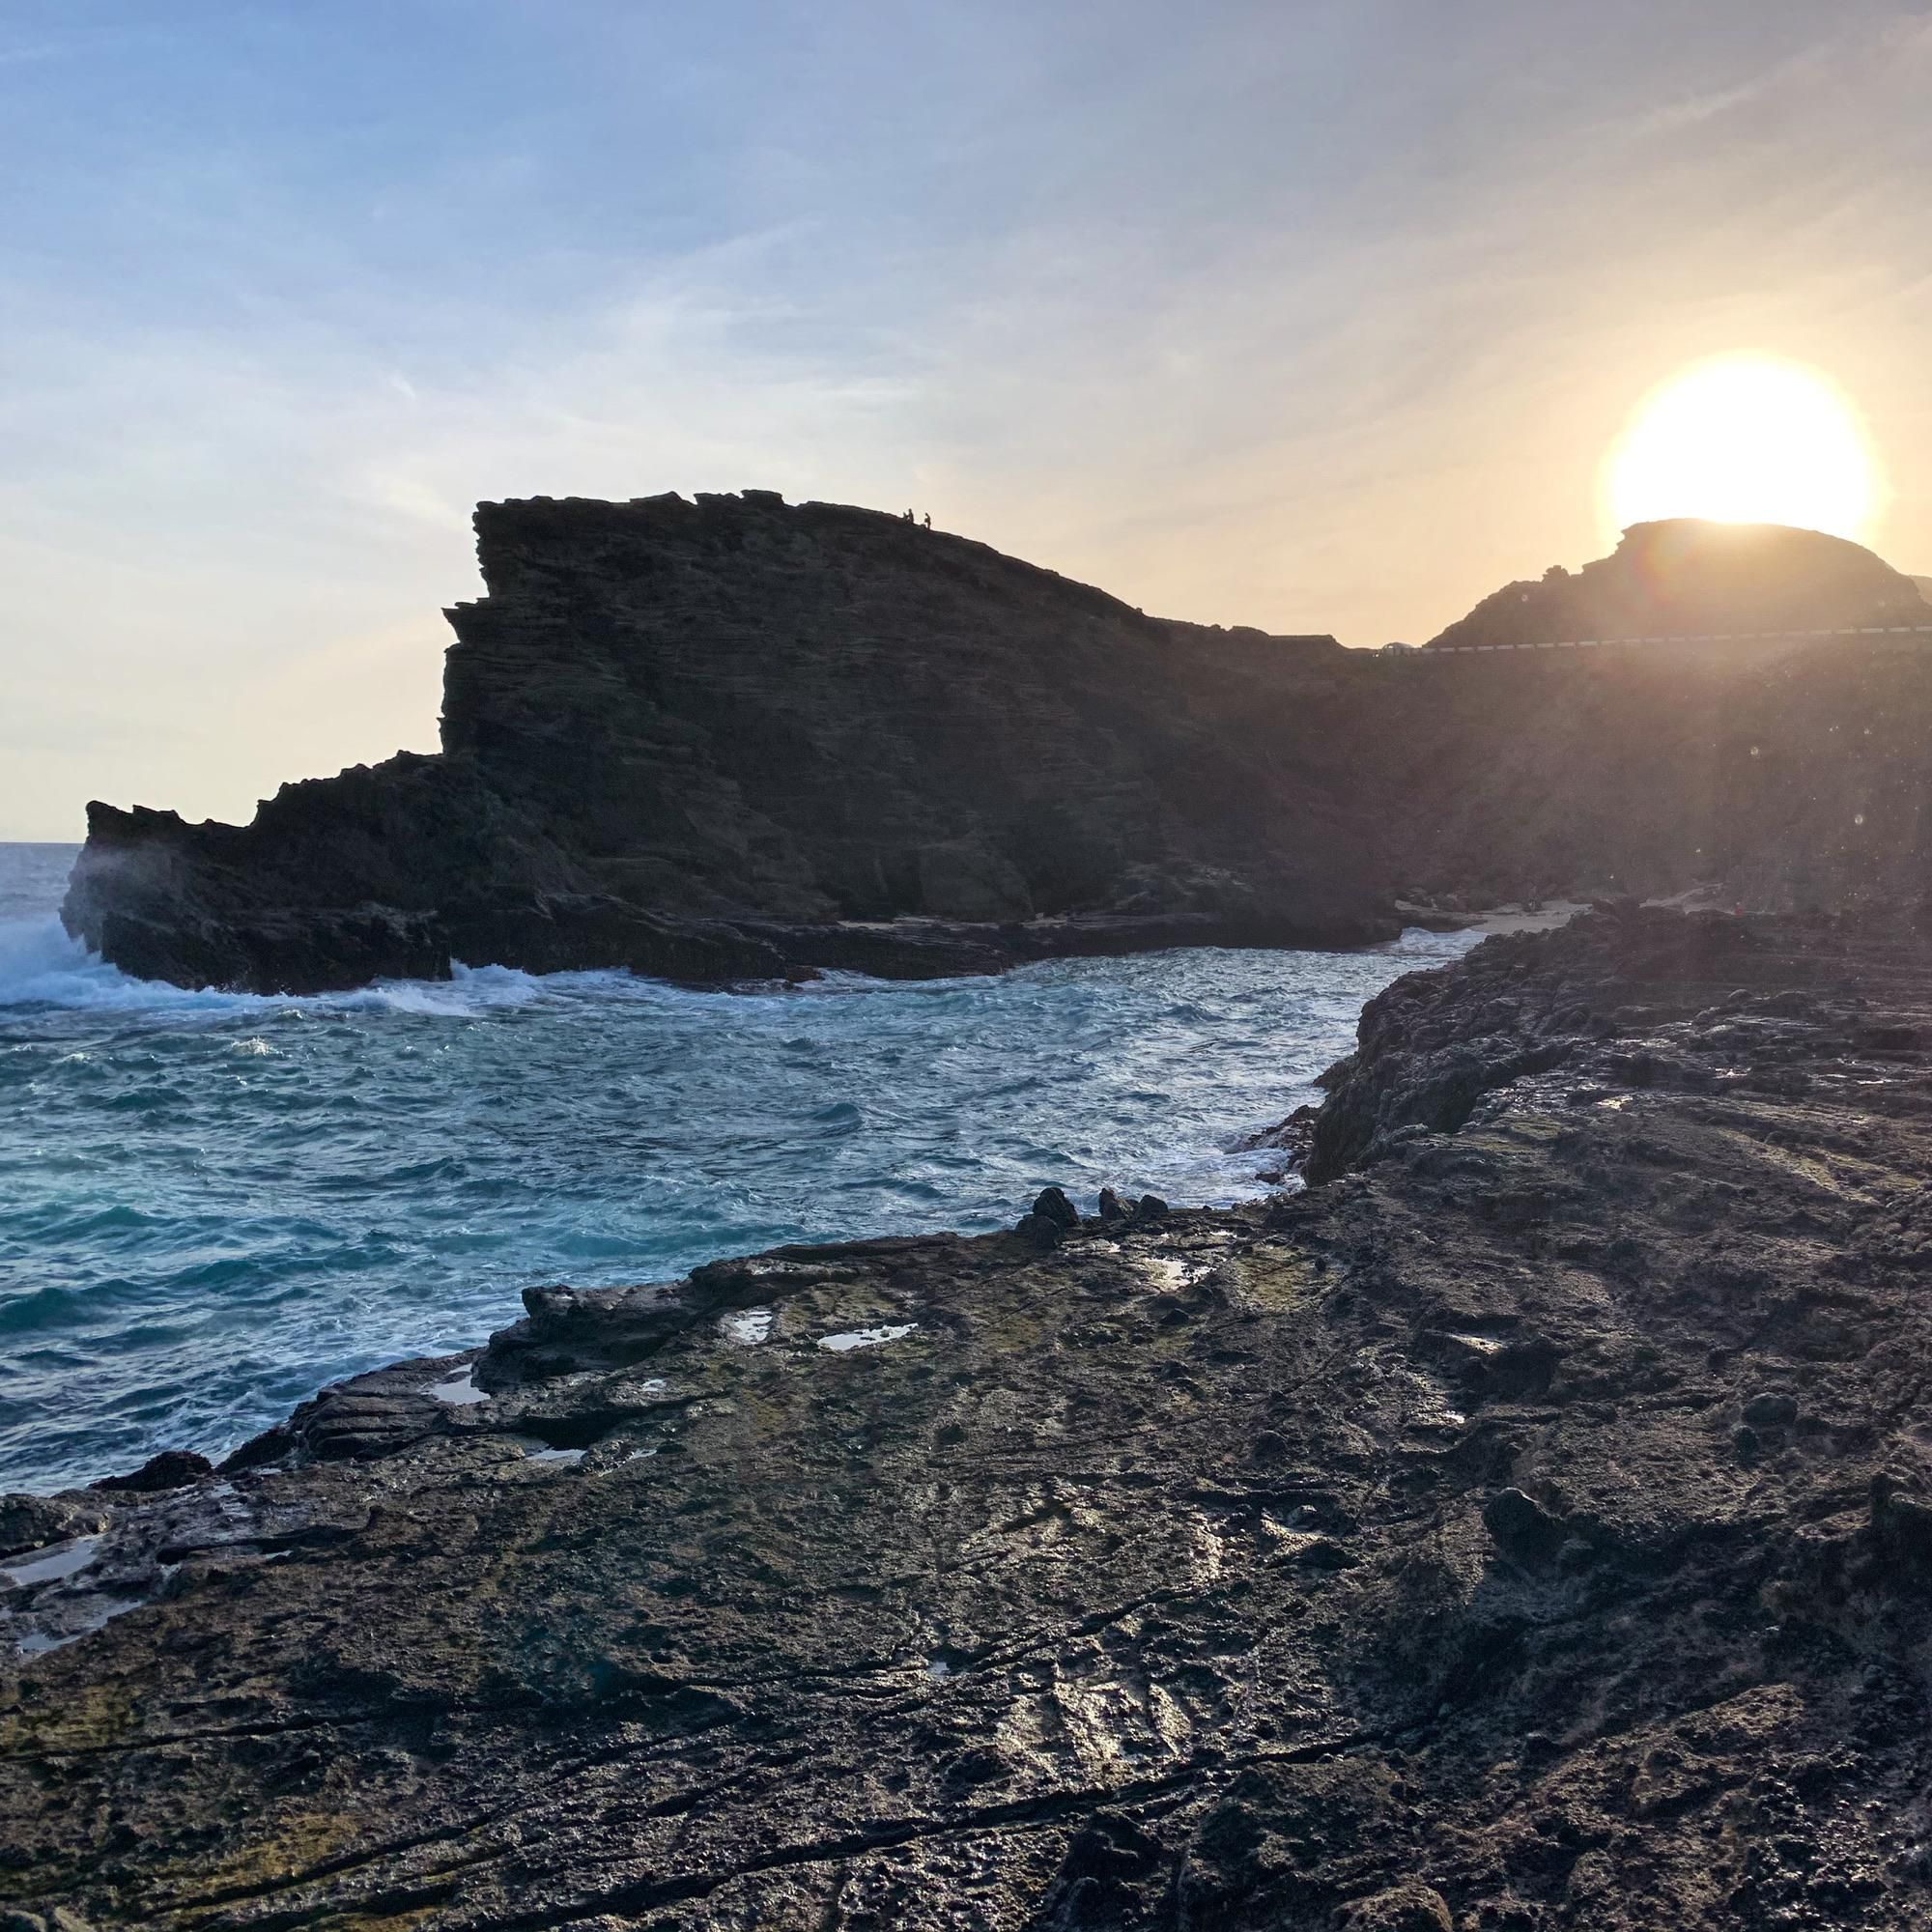 Amazon.in: photography kit -  Sunset behind volcano rock on Oahu Hawaii [2000×2000] [OC] IG: TheKevinDrew get your photography kit now #amazon # affiliate #photography #nature #wallpaper  Best Picture For  chicago photography cityscapes  For Your Taste You are looking for something, and it is going to tell you exactly what you are looking for, and you didn't find that picture. Here you will find the most beautiful picture that will fascinate you when called  chicago photography men . When you l